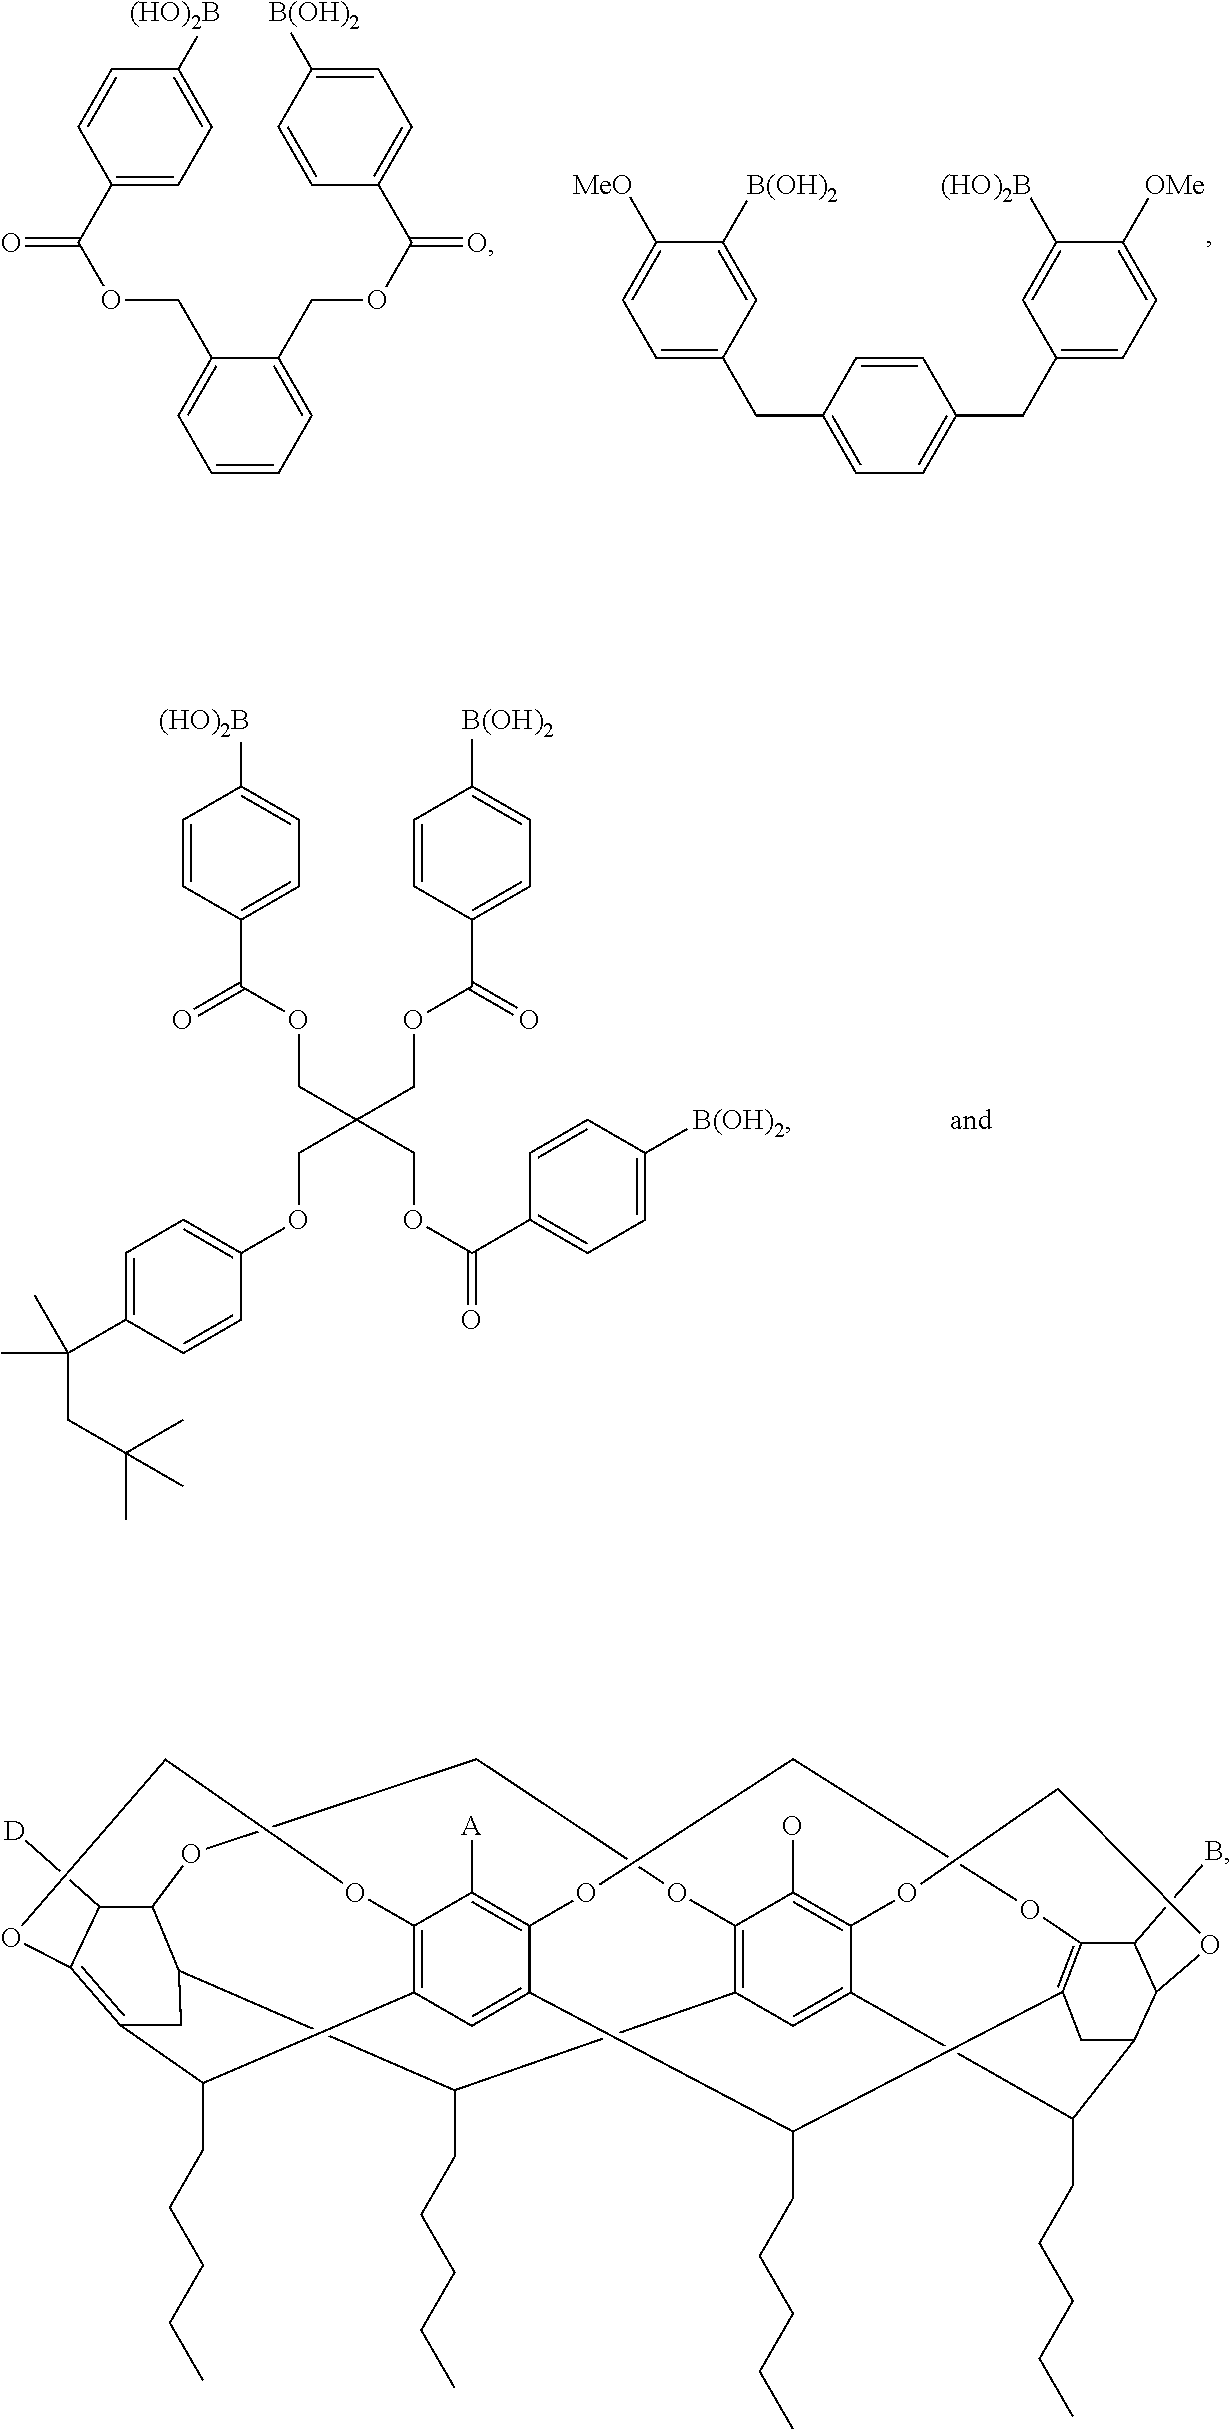 us9242222b2 aldose ketose transformation for separation and or Convolution Diagram figure us09242222 20160126 c00011